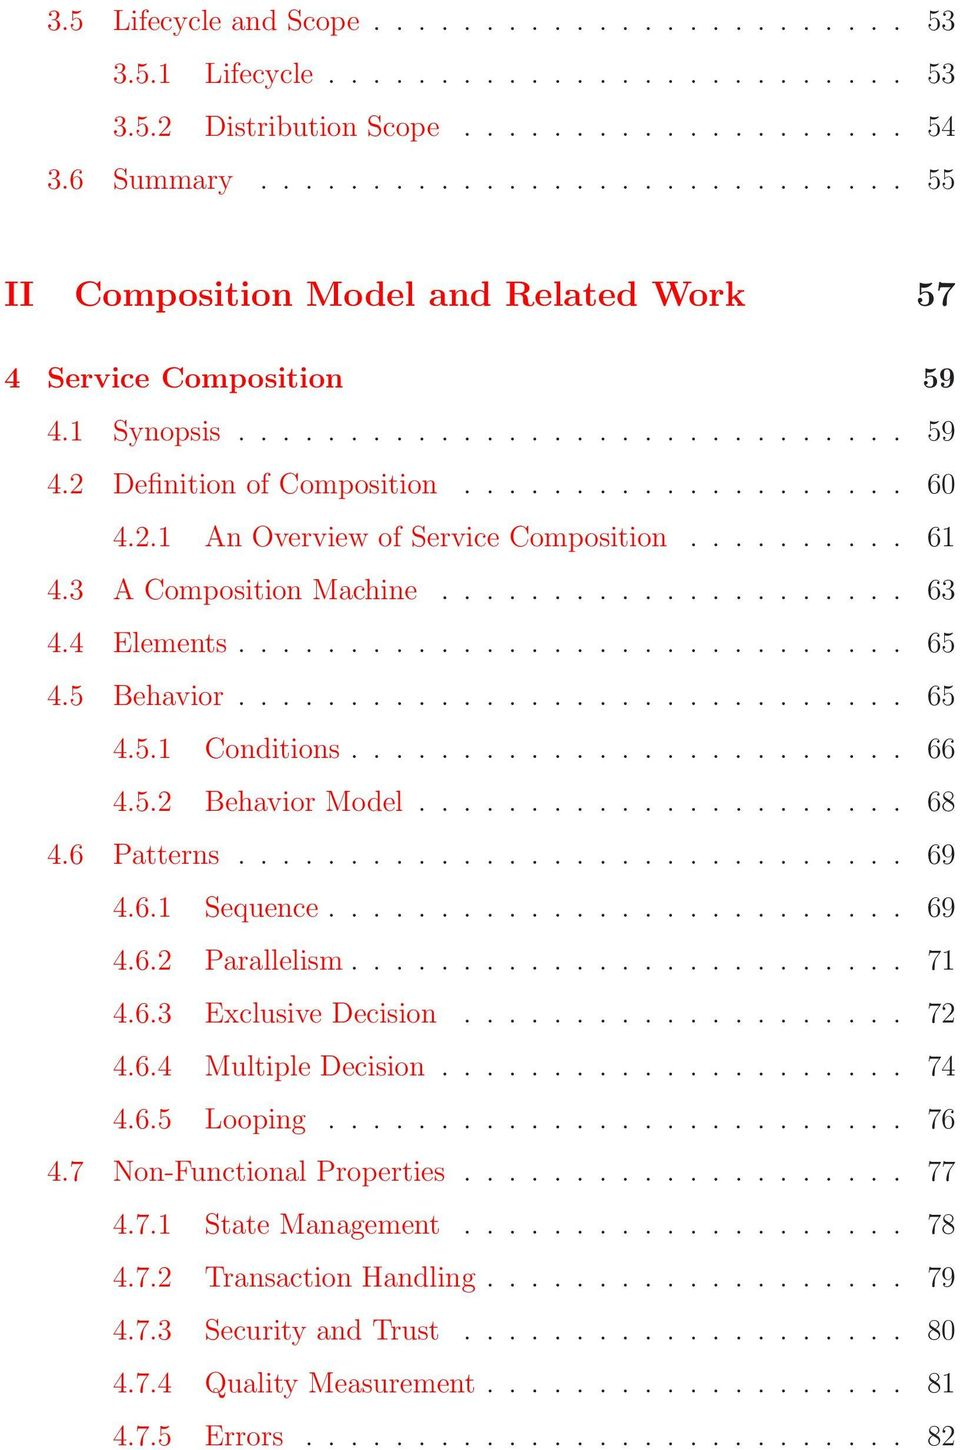 2.1 An Overview of Service Composition.......... 61 4.3 A Composition Machine..................... 63 4.4 Elements.............................. 65 4.5 Behavior.............................. 65 4.5.1 Conditions.